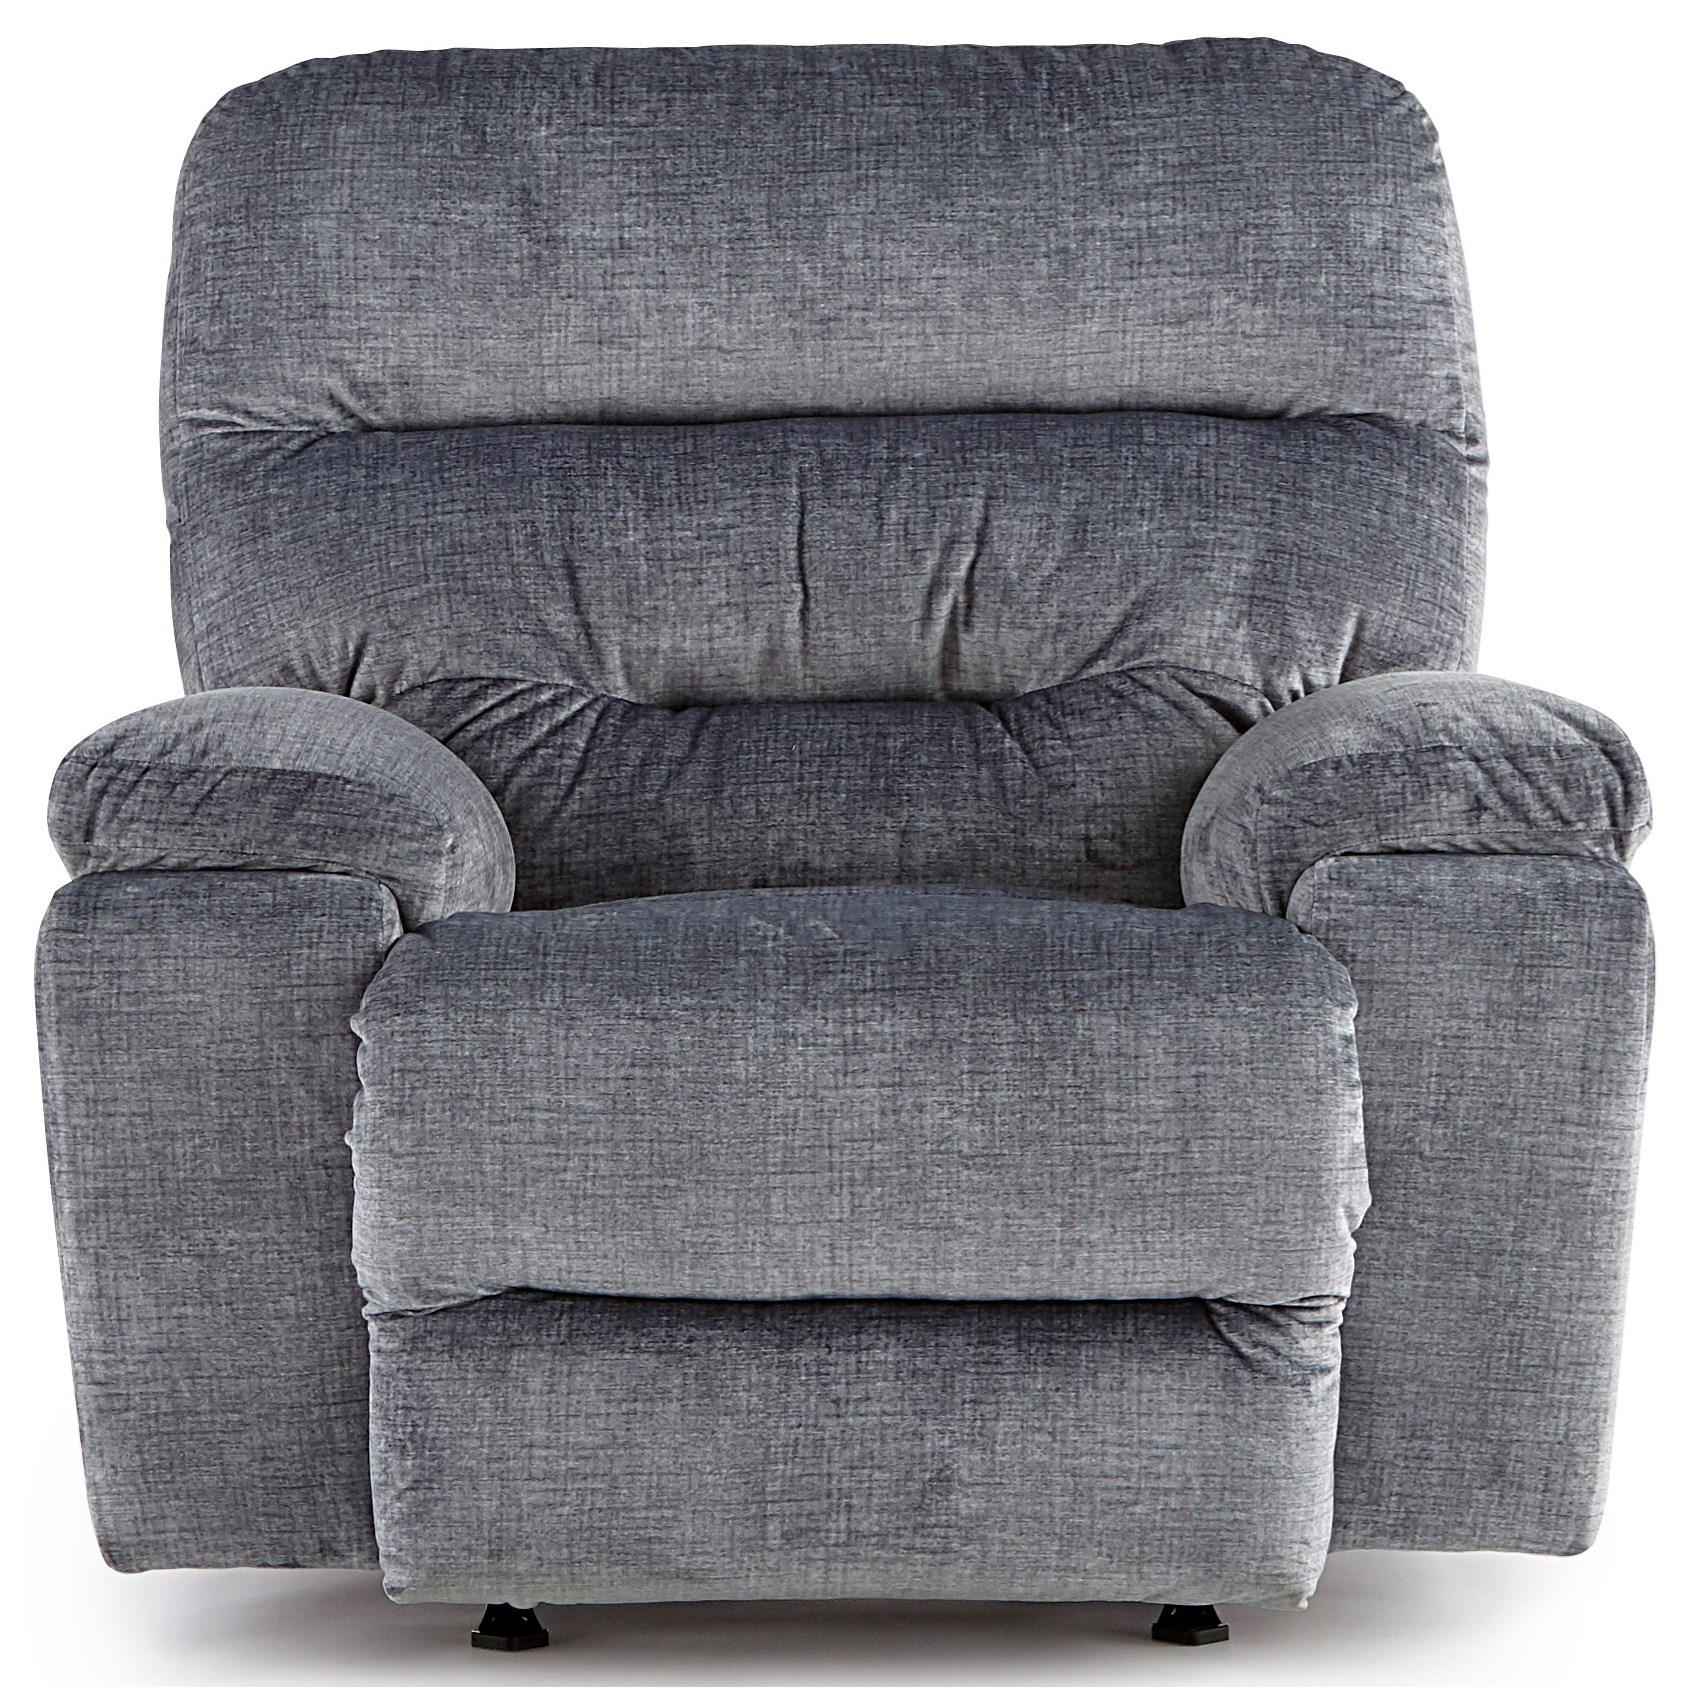 Ryson Power Headrest Swivel Glider Recliner by Best Home Furnishings at Lapeer Furniture & Mattress Center